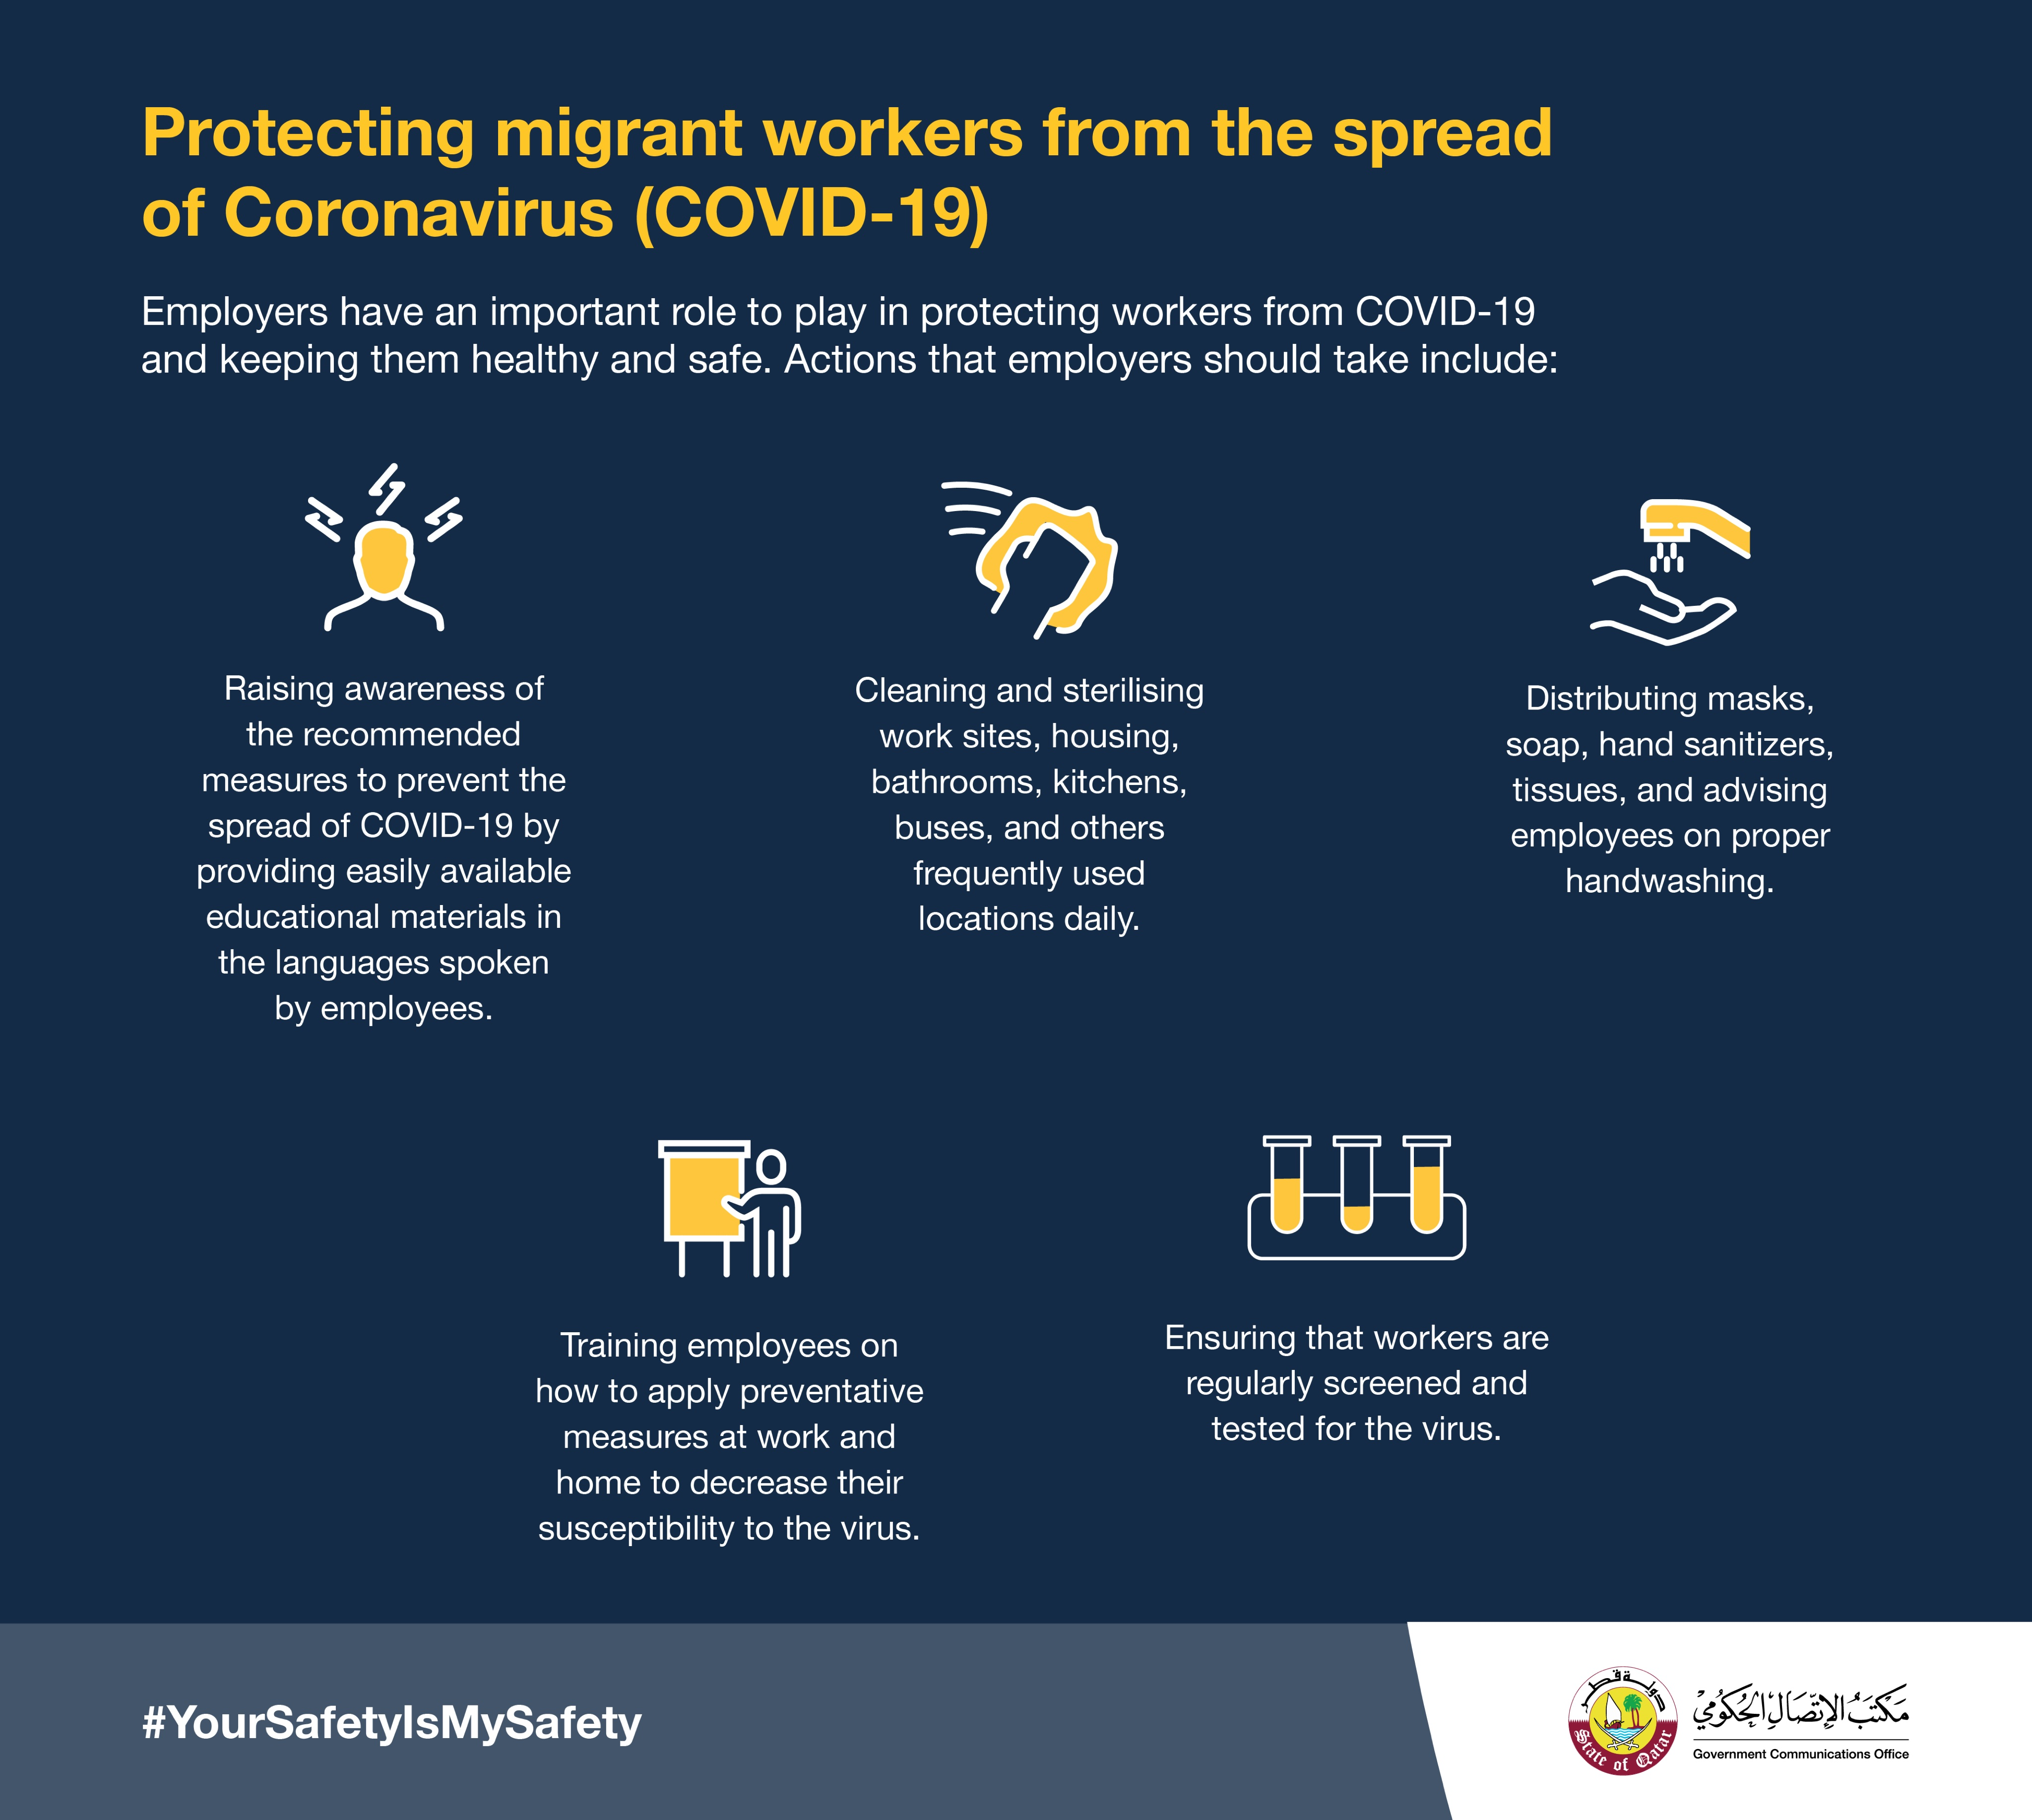 5 measures employers should take to protect workers from COVID-19